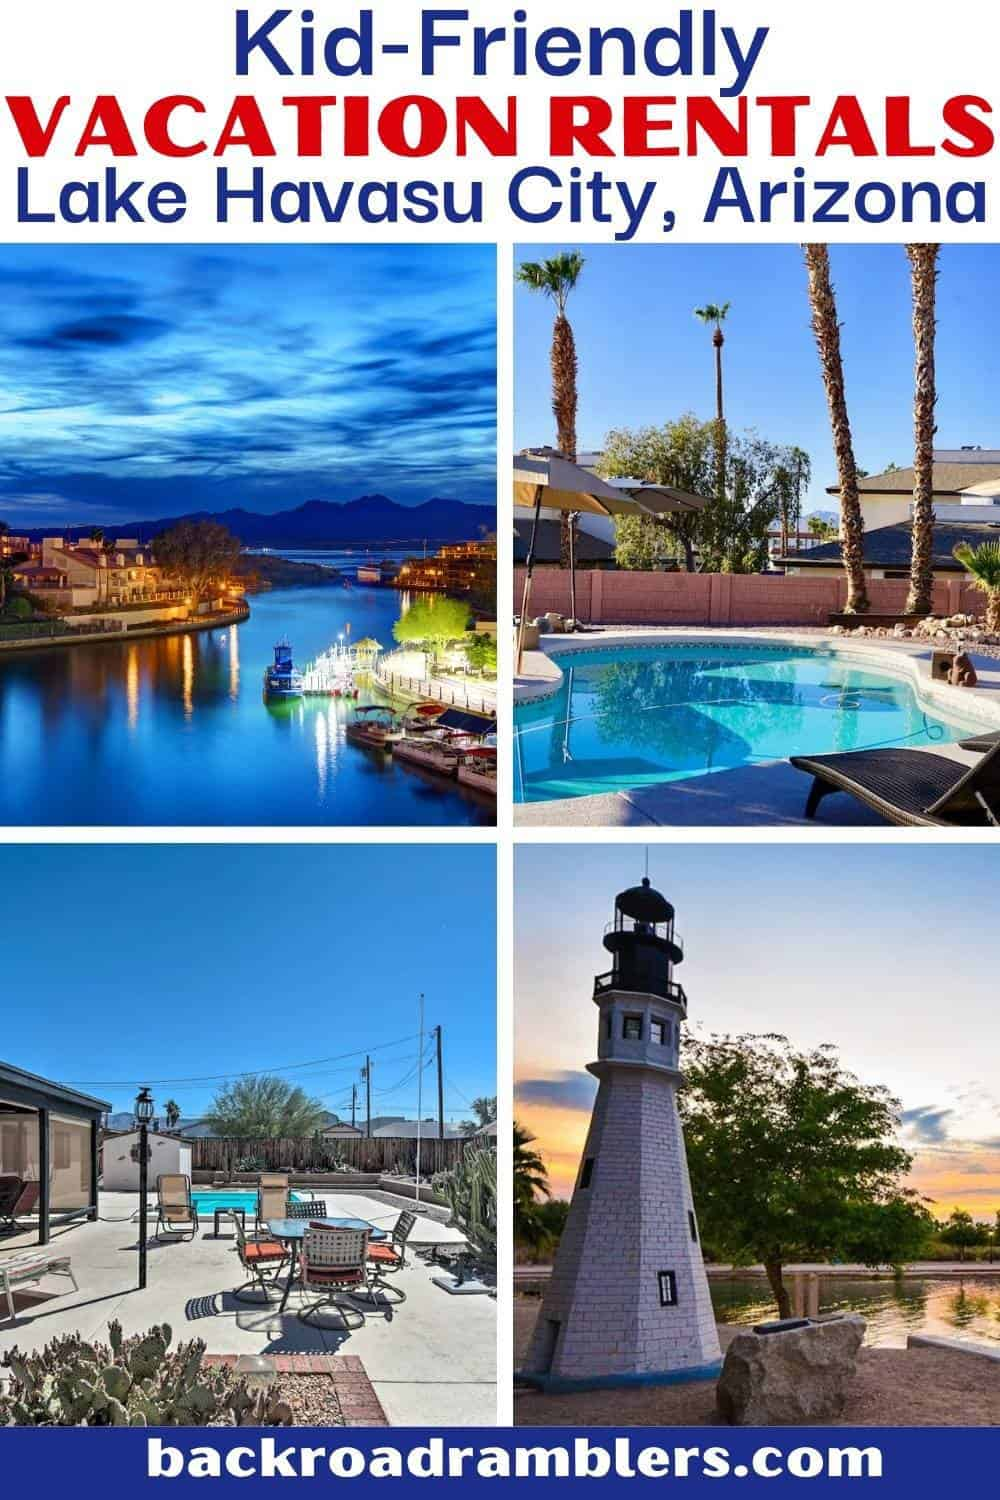 A collage of photos featuring Lake Havasu City in AZ. Text overlay: Kid Friendly Vacation Rentals in Lake Havasu City, Arizona